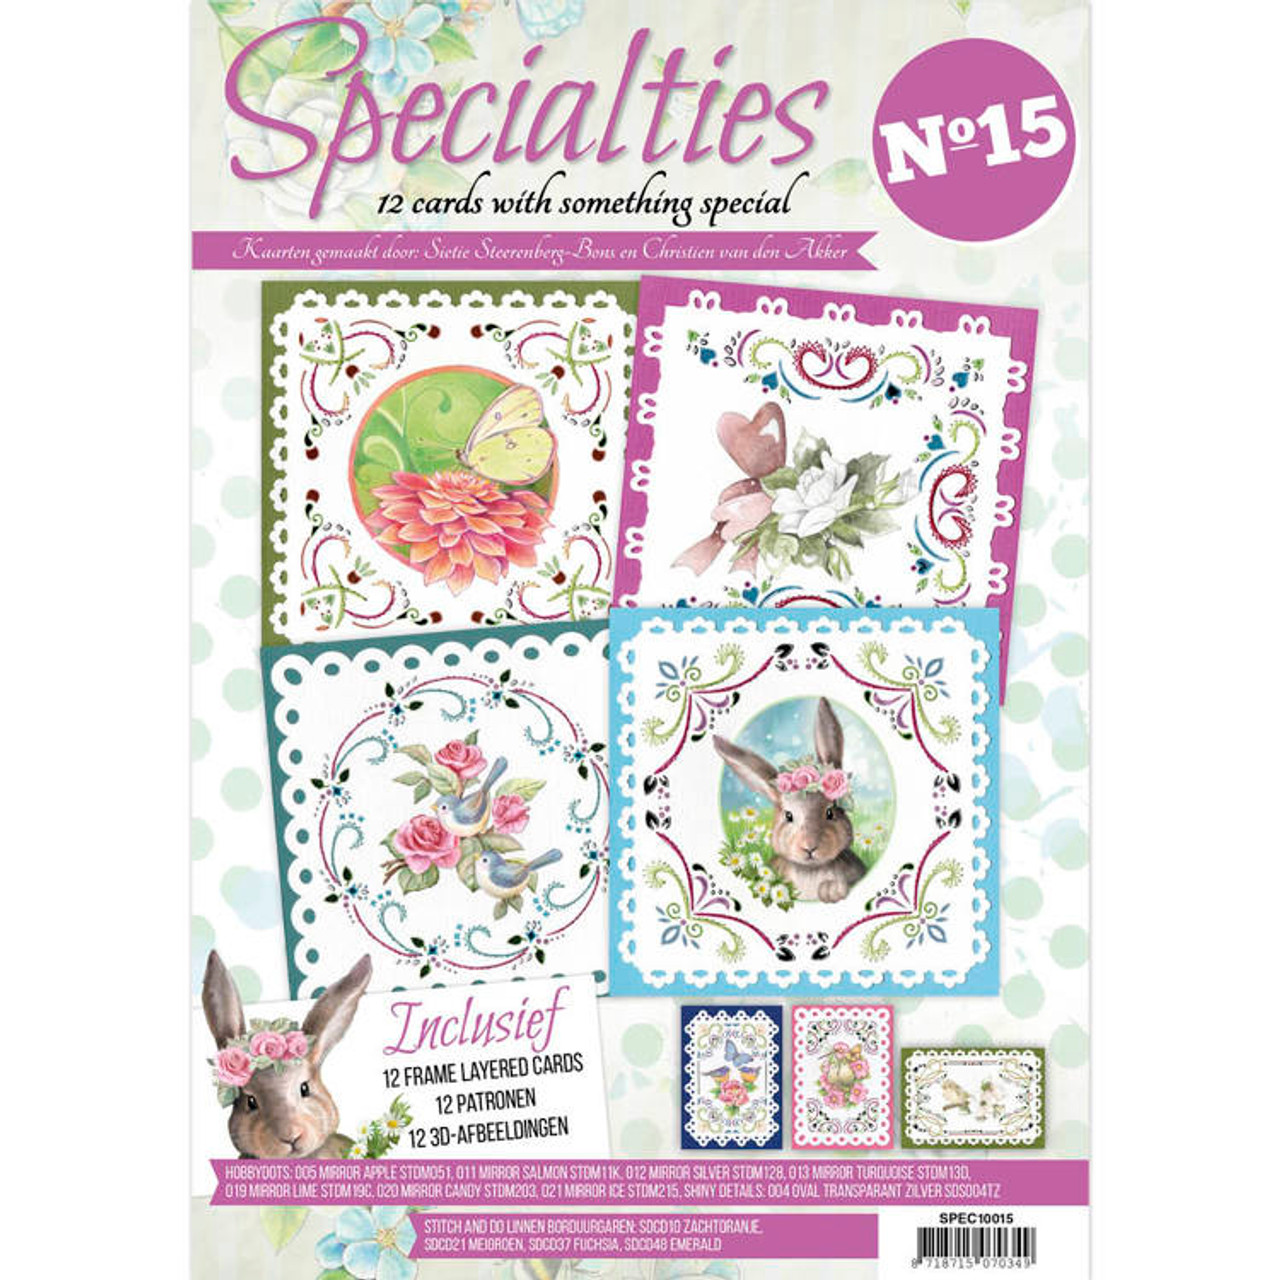 Specialties A4 Booklet 15 - Card Stitching & Hobbydots